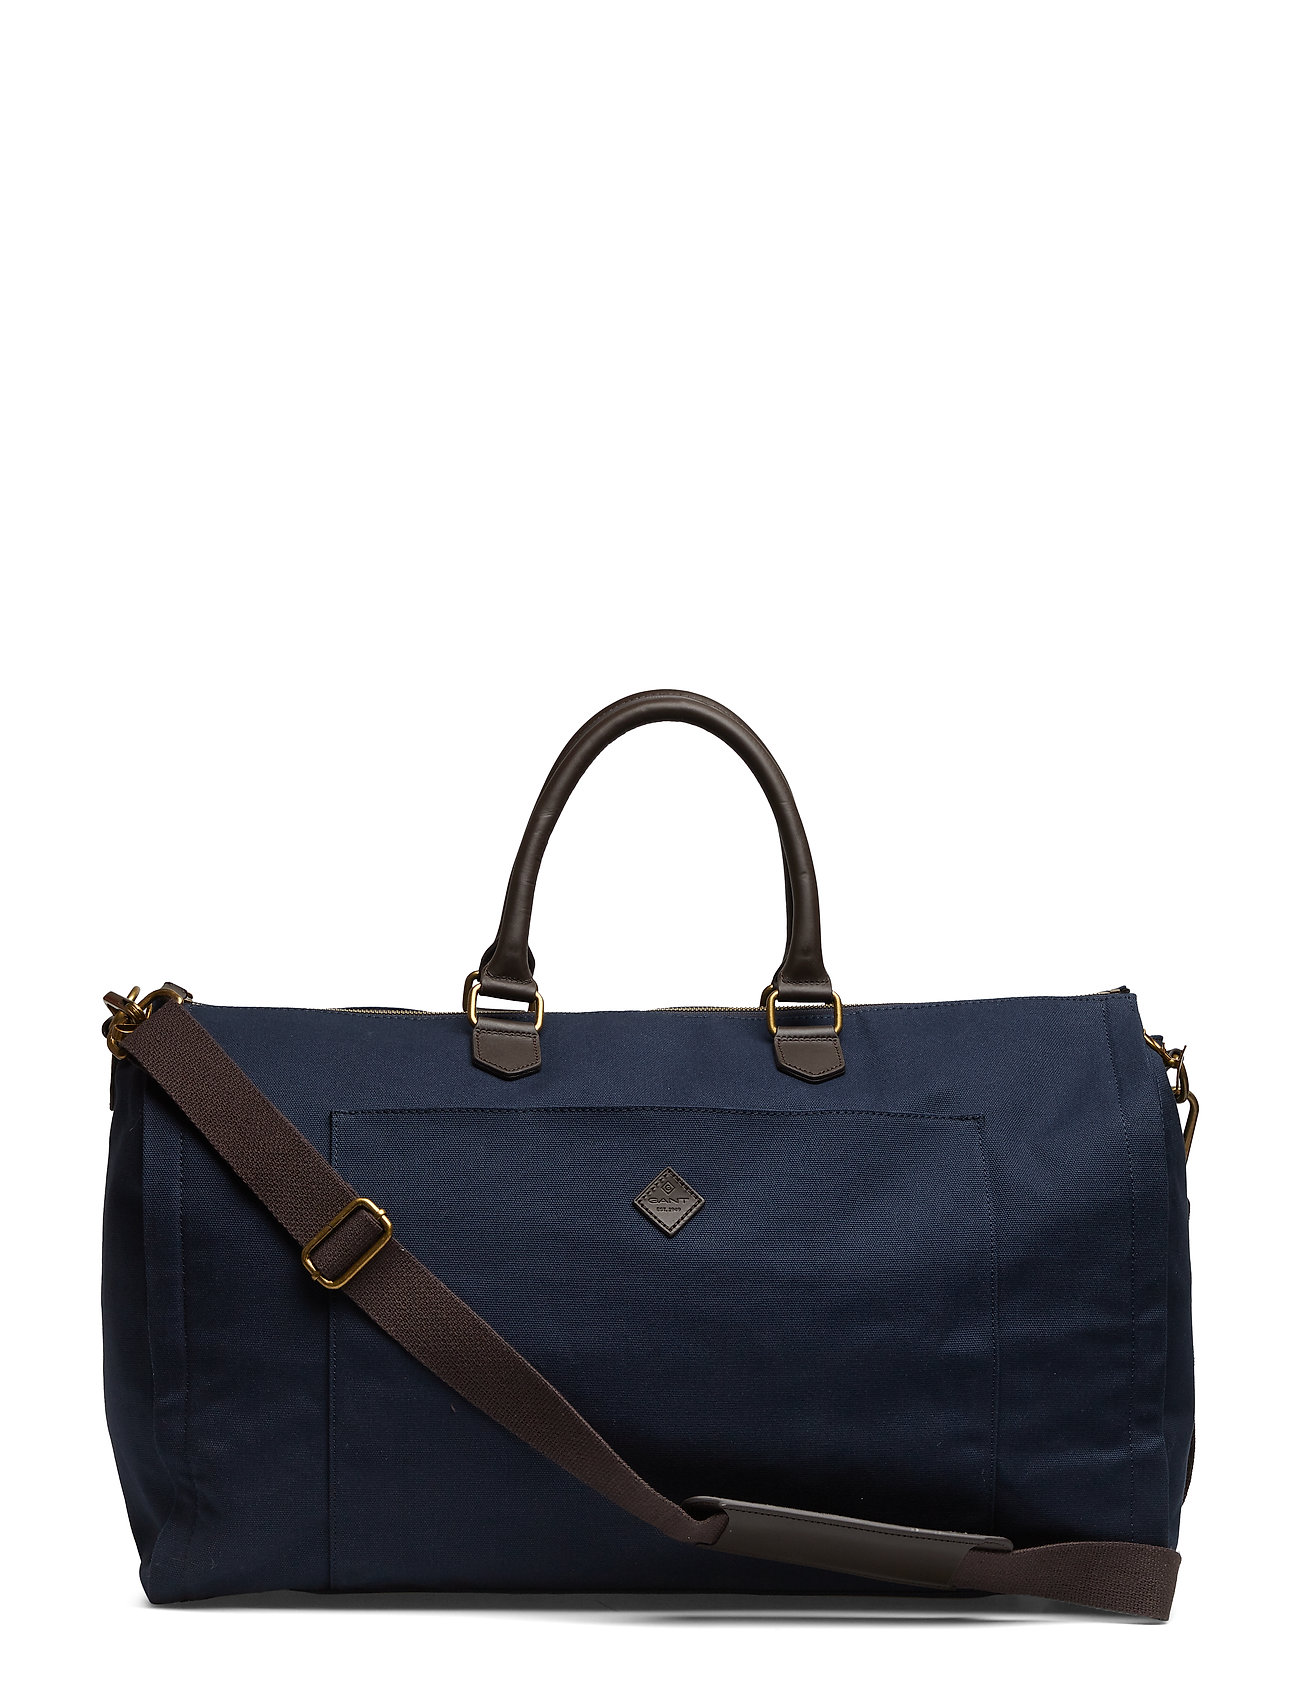 GANT D1. HOUSE OF GANT BOSTON BAG